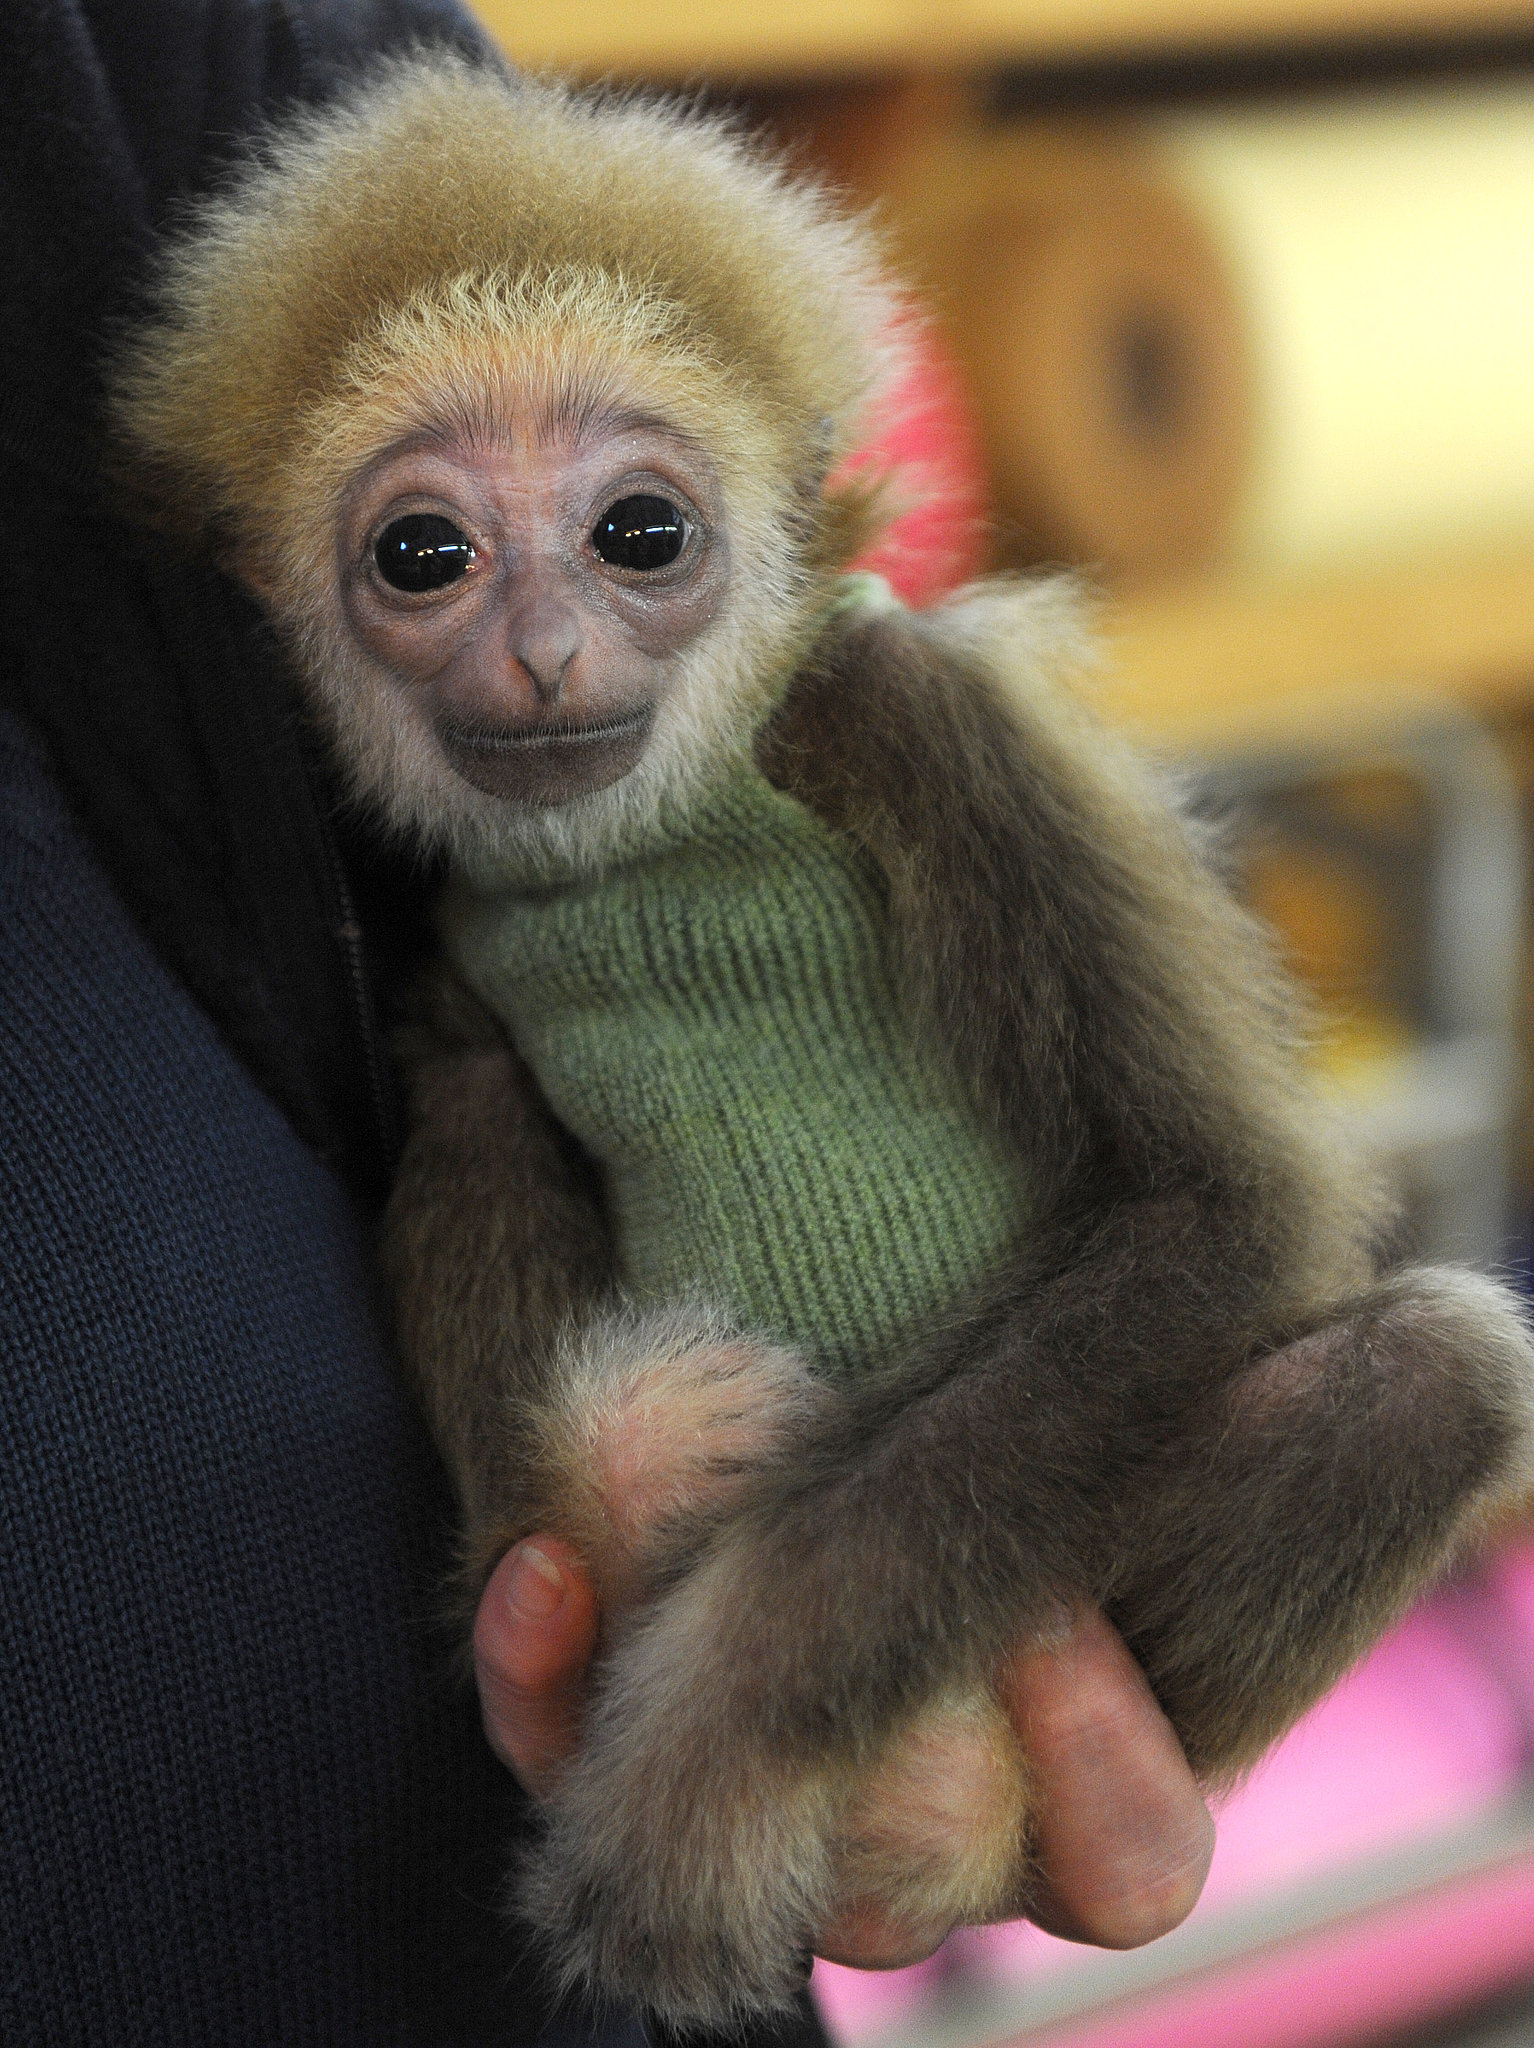 Even though their coat colors can range from black to brown to tan, the white-handed gibbon's hands are, well, white!